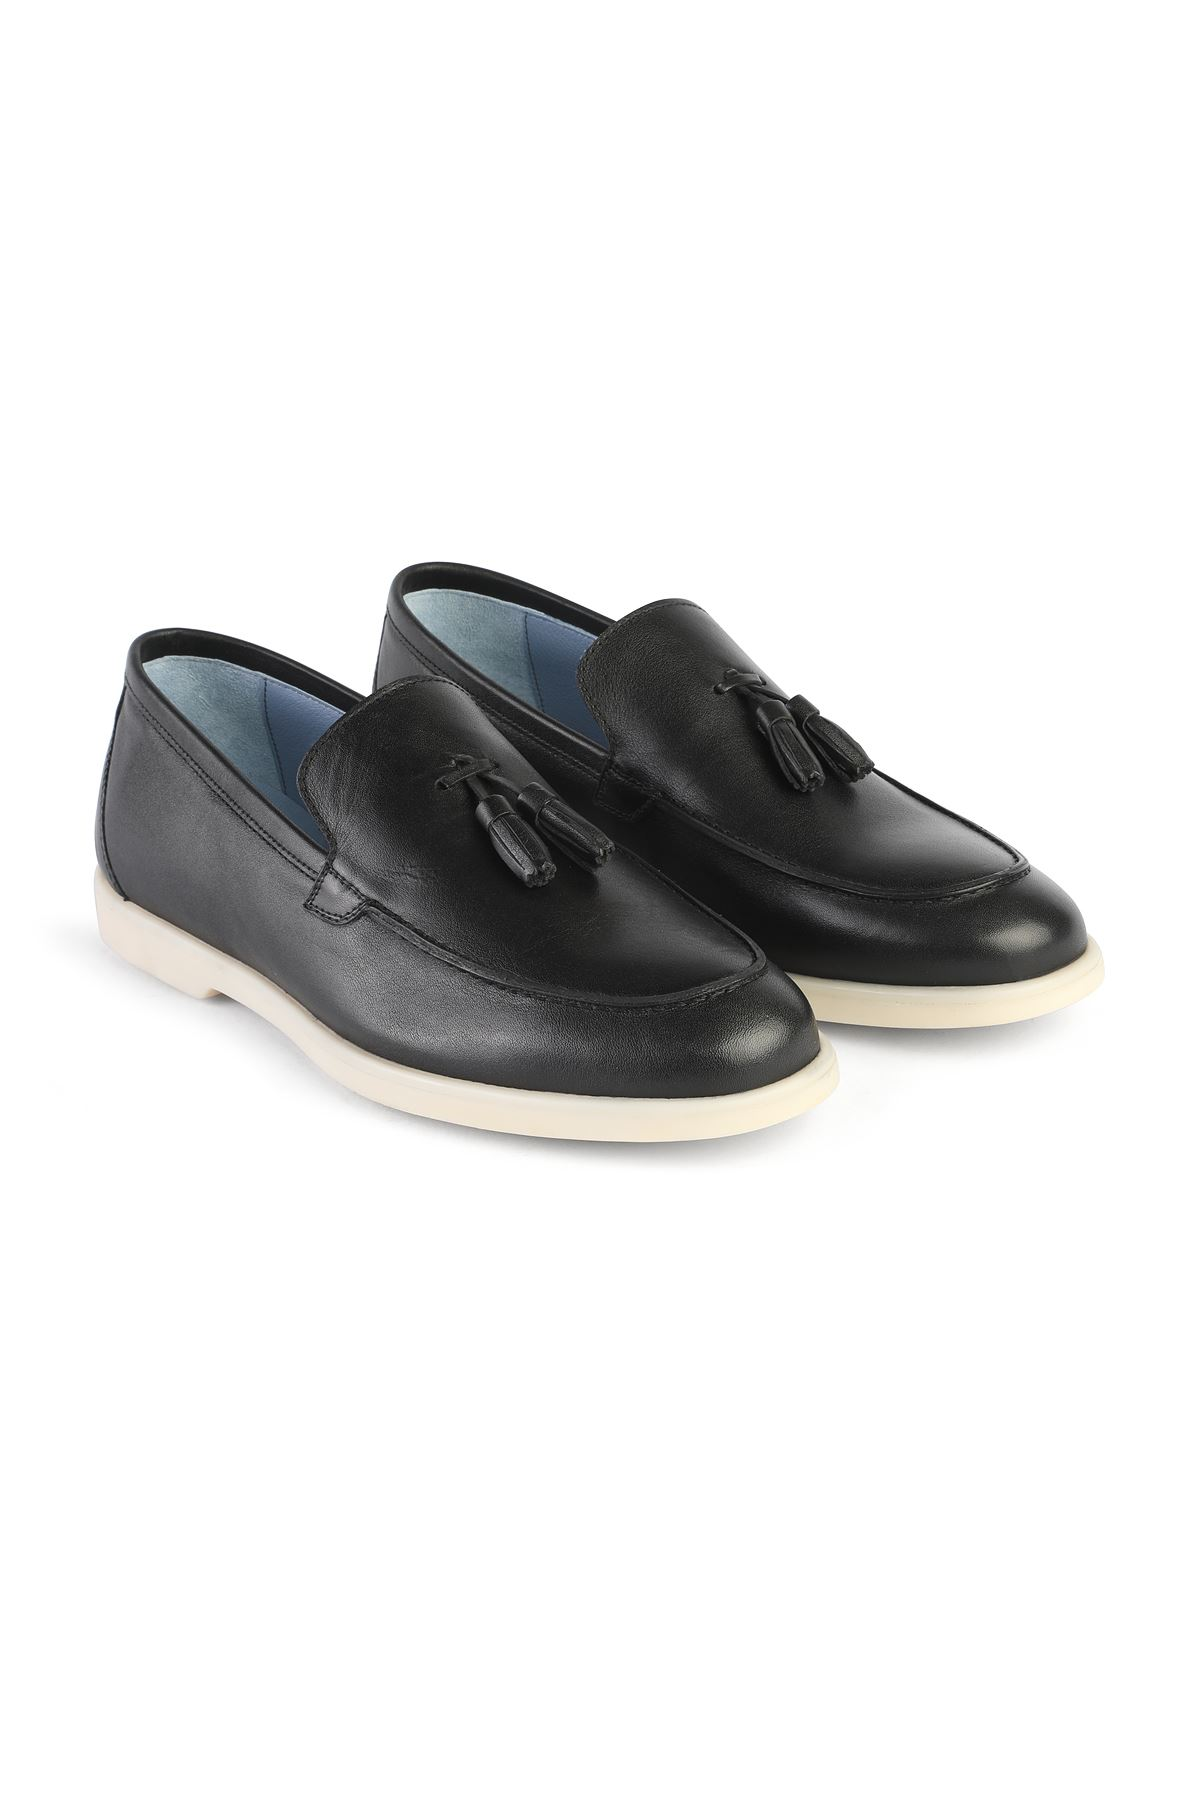 Libero 3219 Navy Loafer Shoes